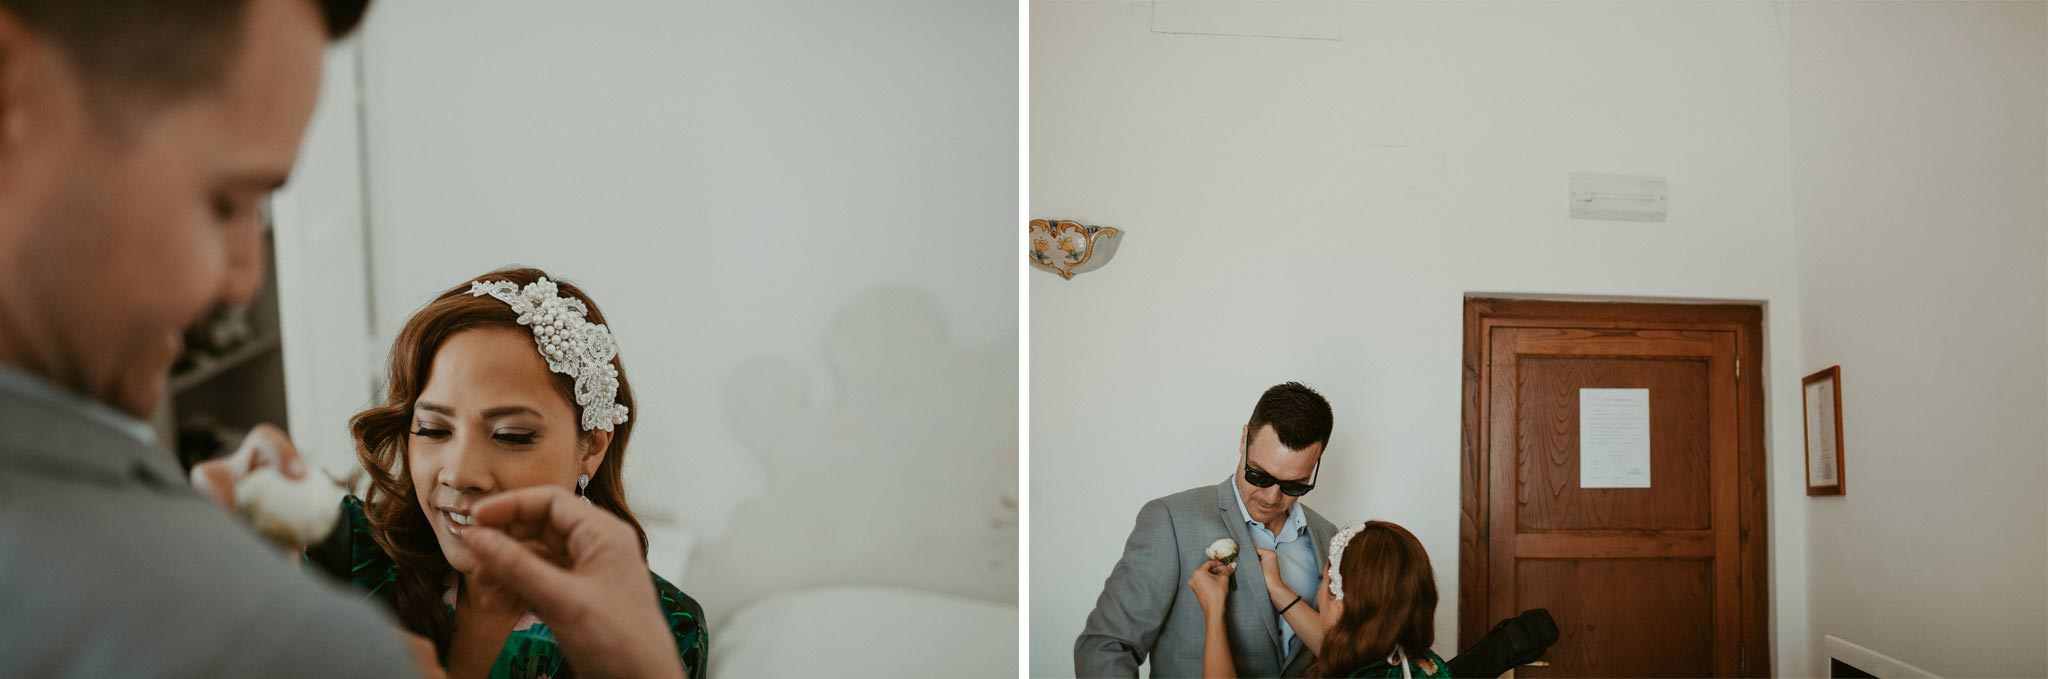 positano-wedding-photographer-020